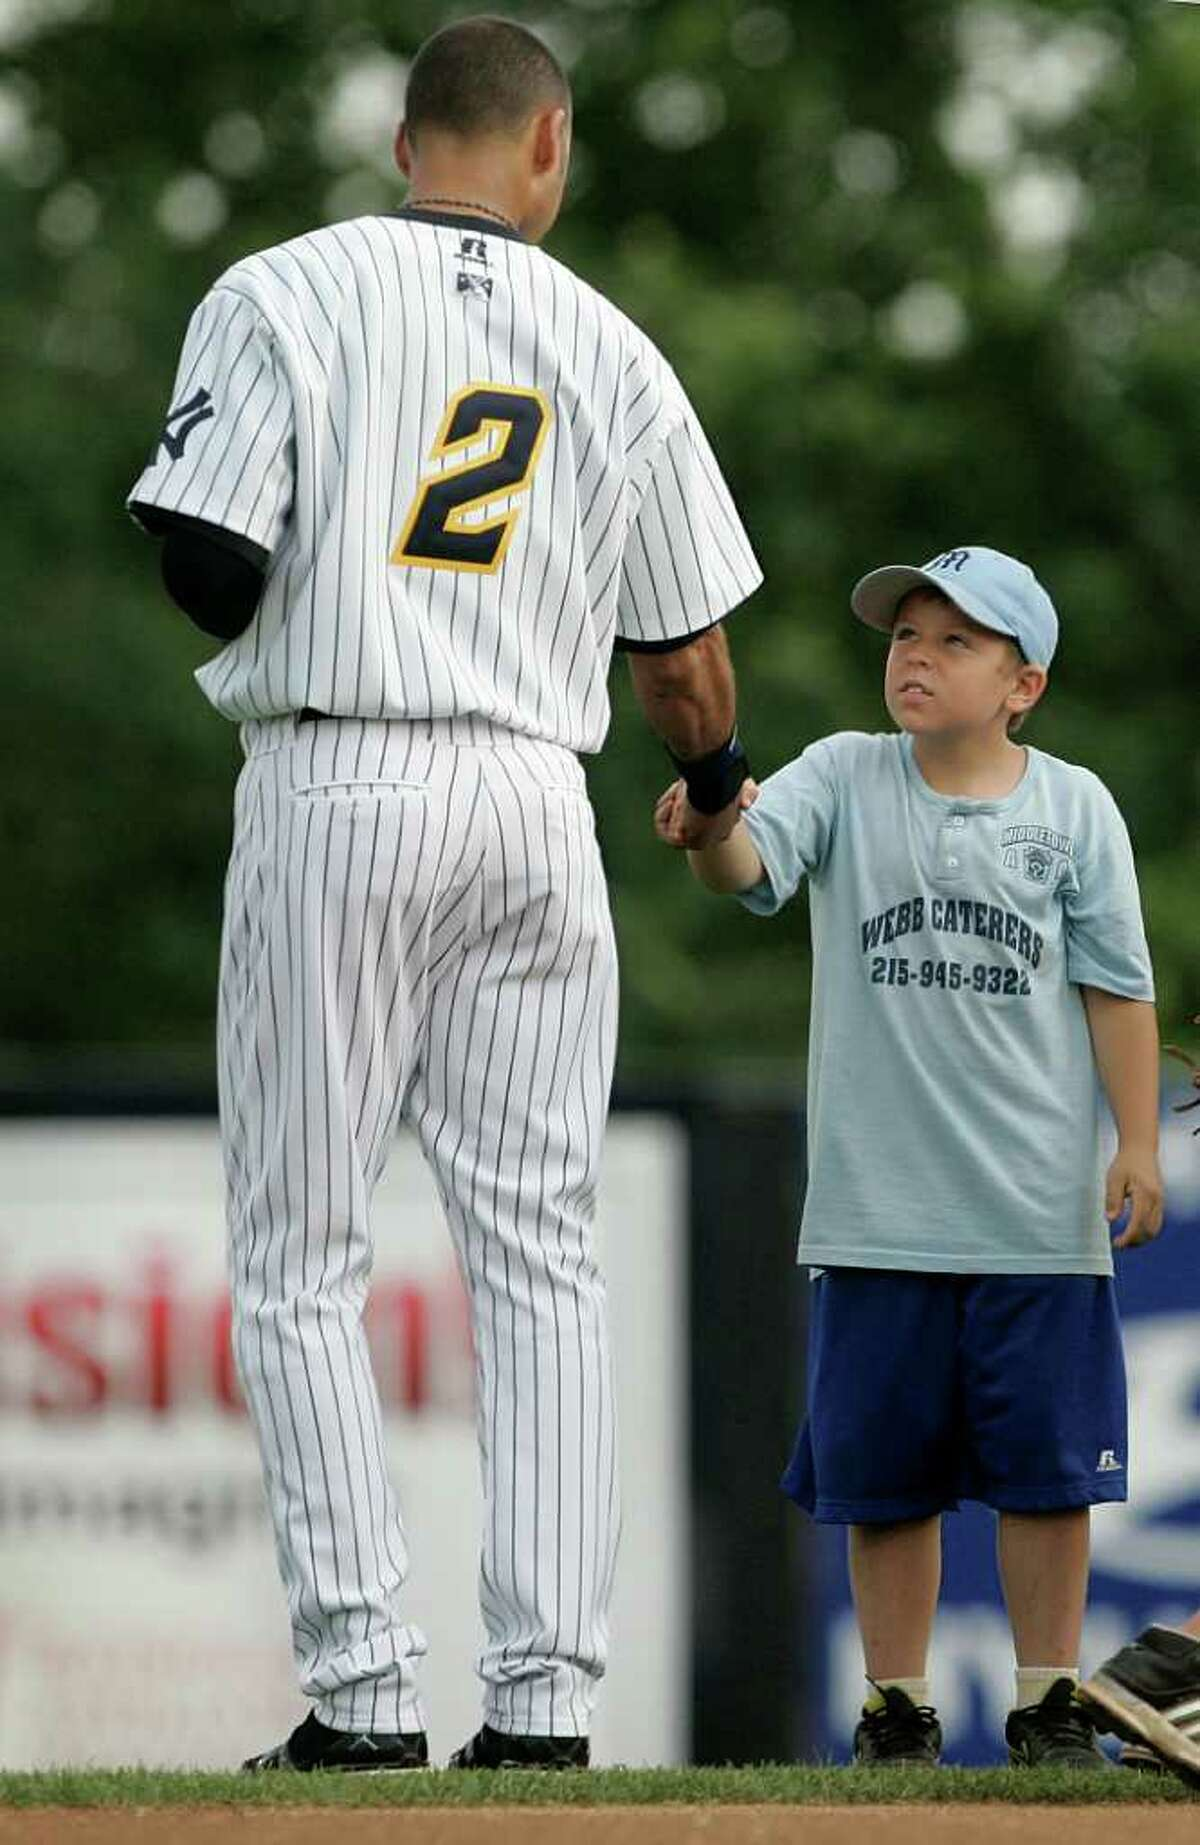 TRENTON, NJ - JULY 2: Derek Jeter of the New York Yankees shakes hands with a young boy after the national anthem during his minor league rehab start with the Trenton Thunder in a game against the Altoona Curve on July 2, 2011 at Mercer County Waterfront Park in Trenton, New Jersey. Jeter is set to rejoin the Yankees in Cleveland on Monday in his return from a calf injury. (Photo by Rich Schultz/Getty Images)